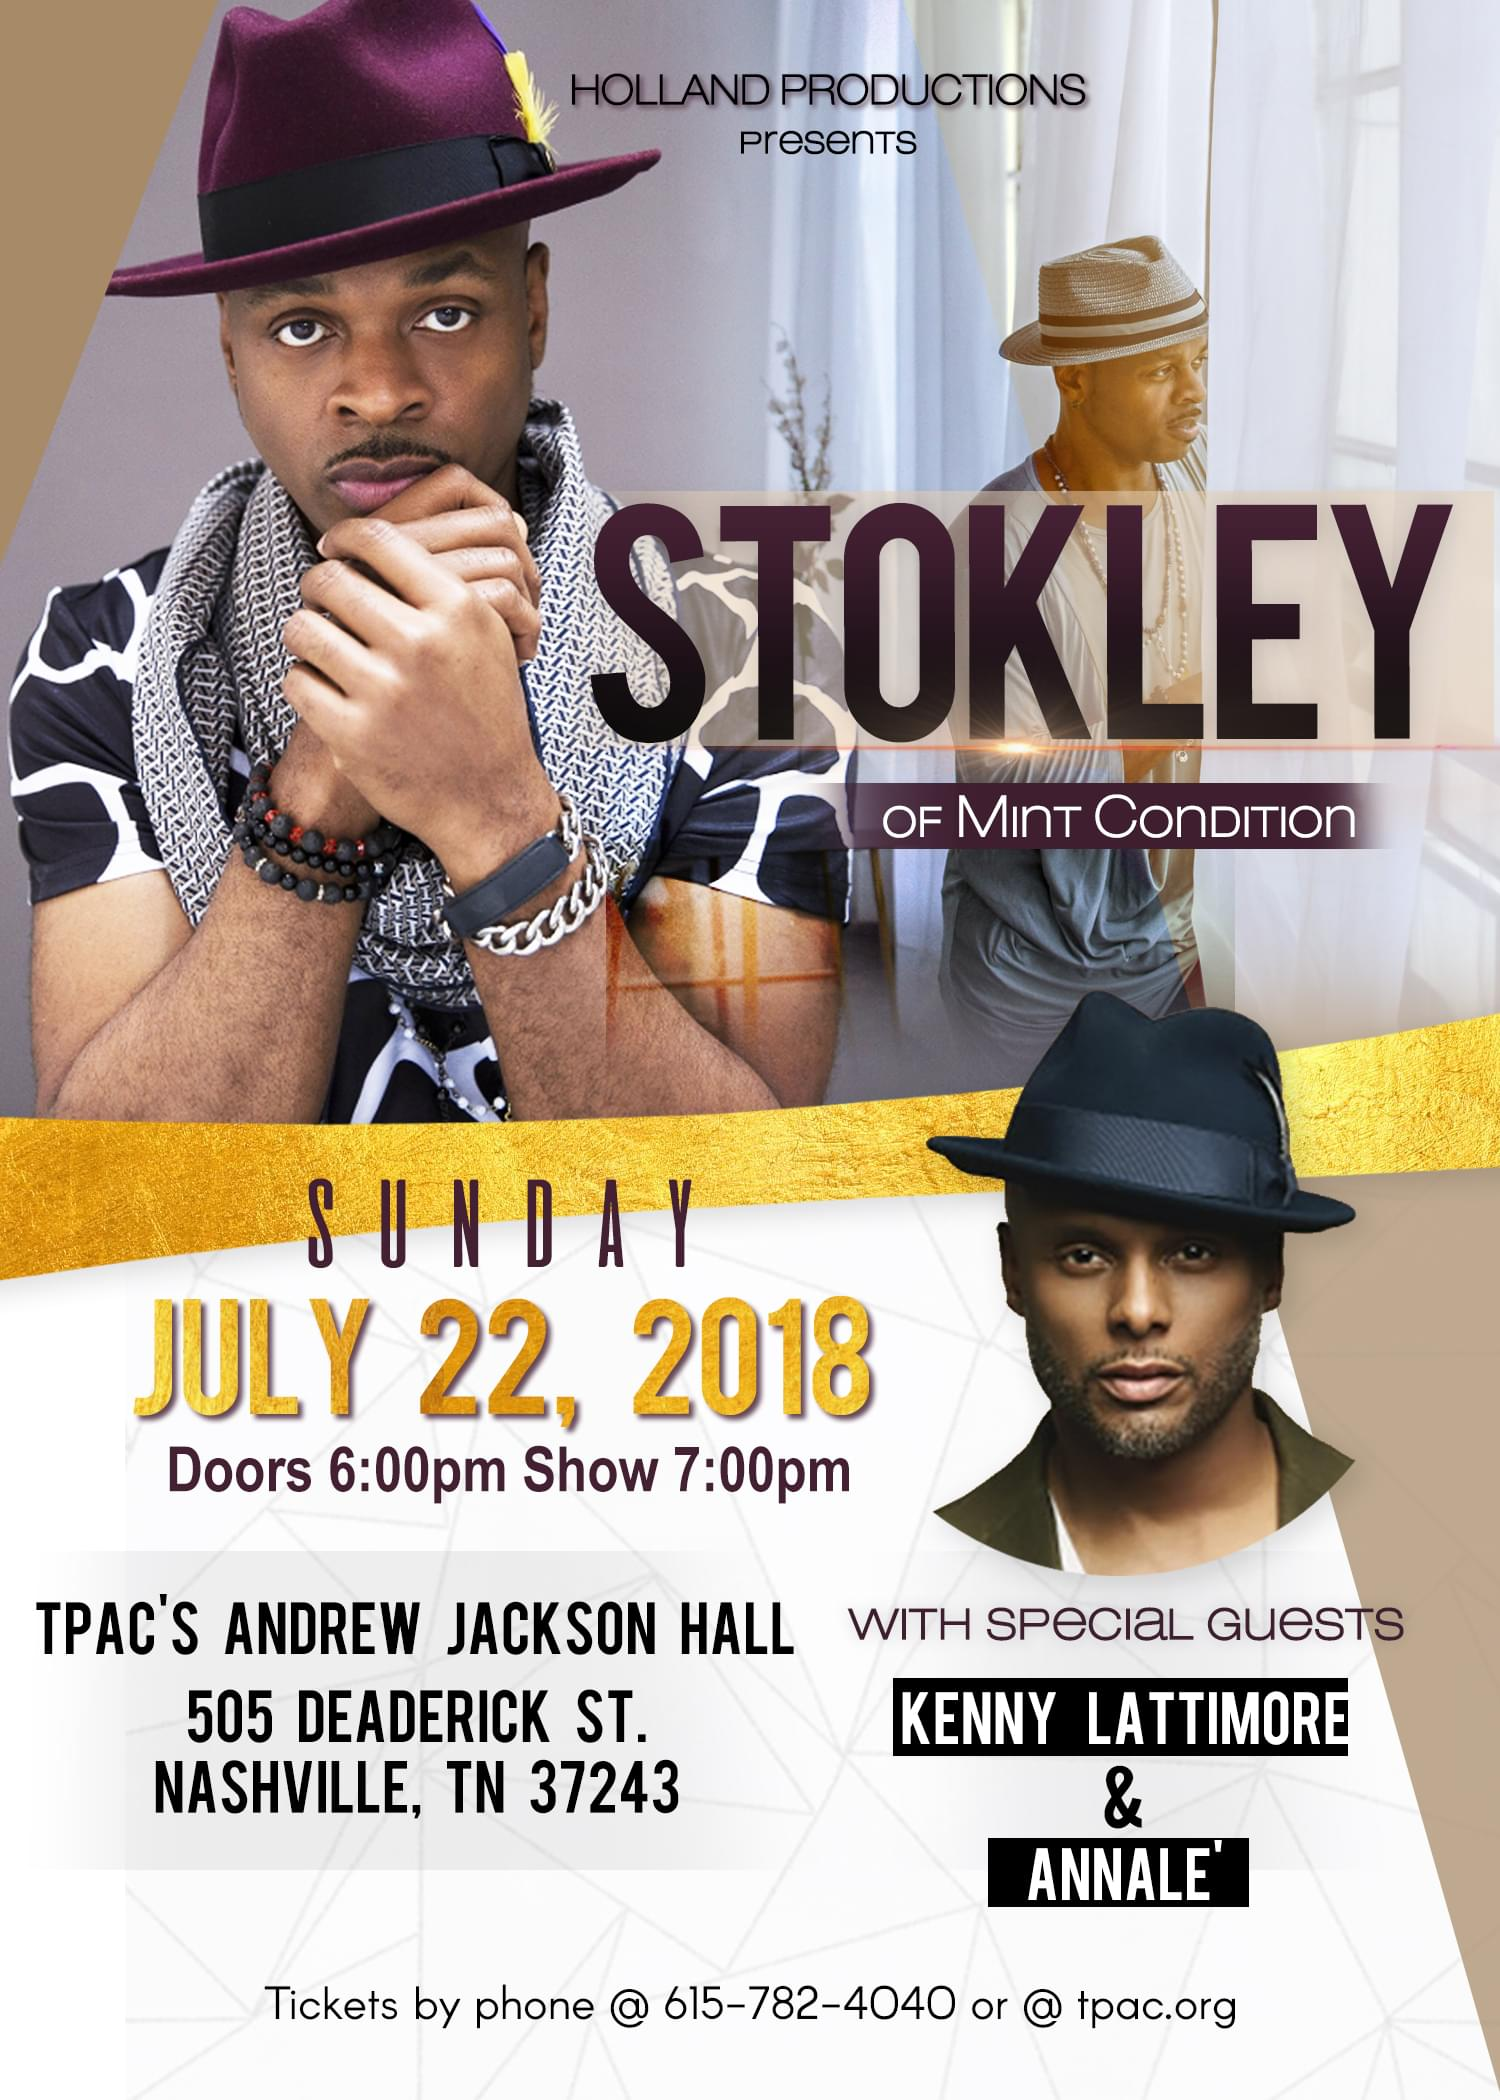 Stokley and Friends_Nashville TPAC